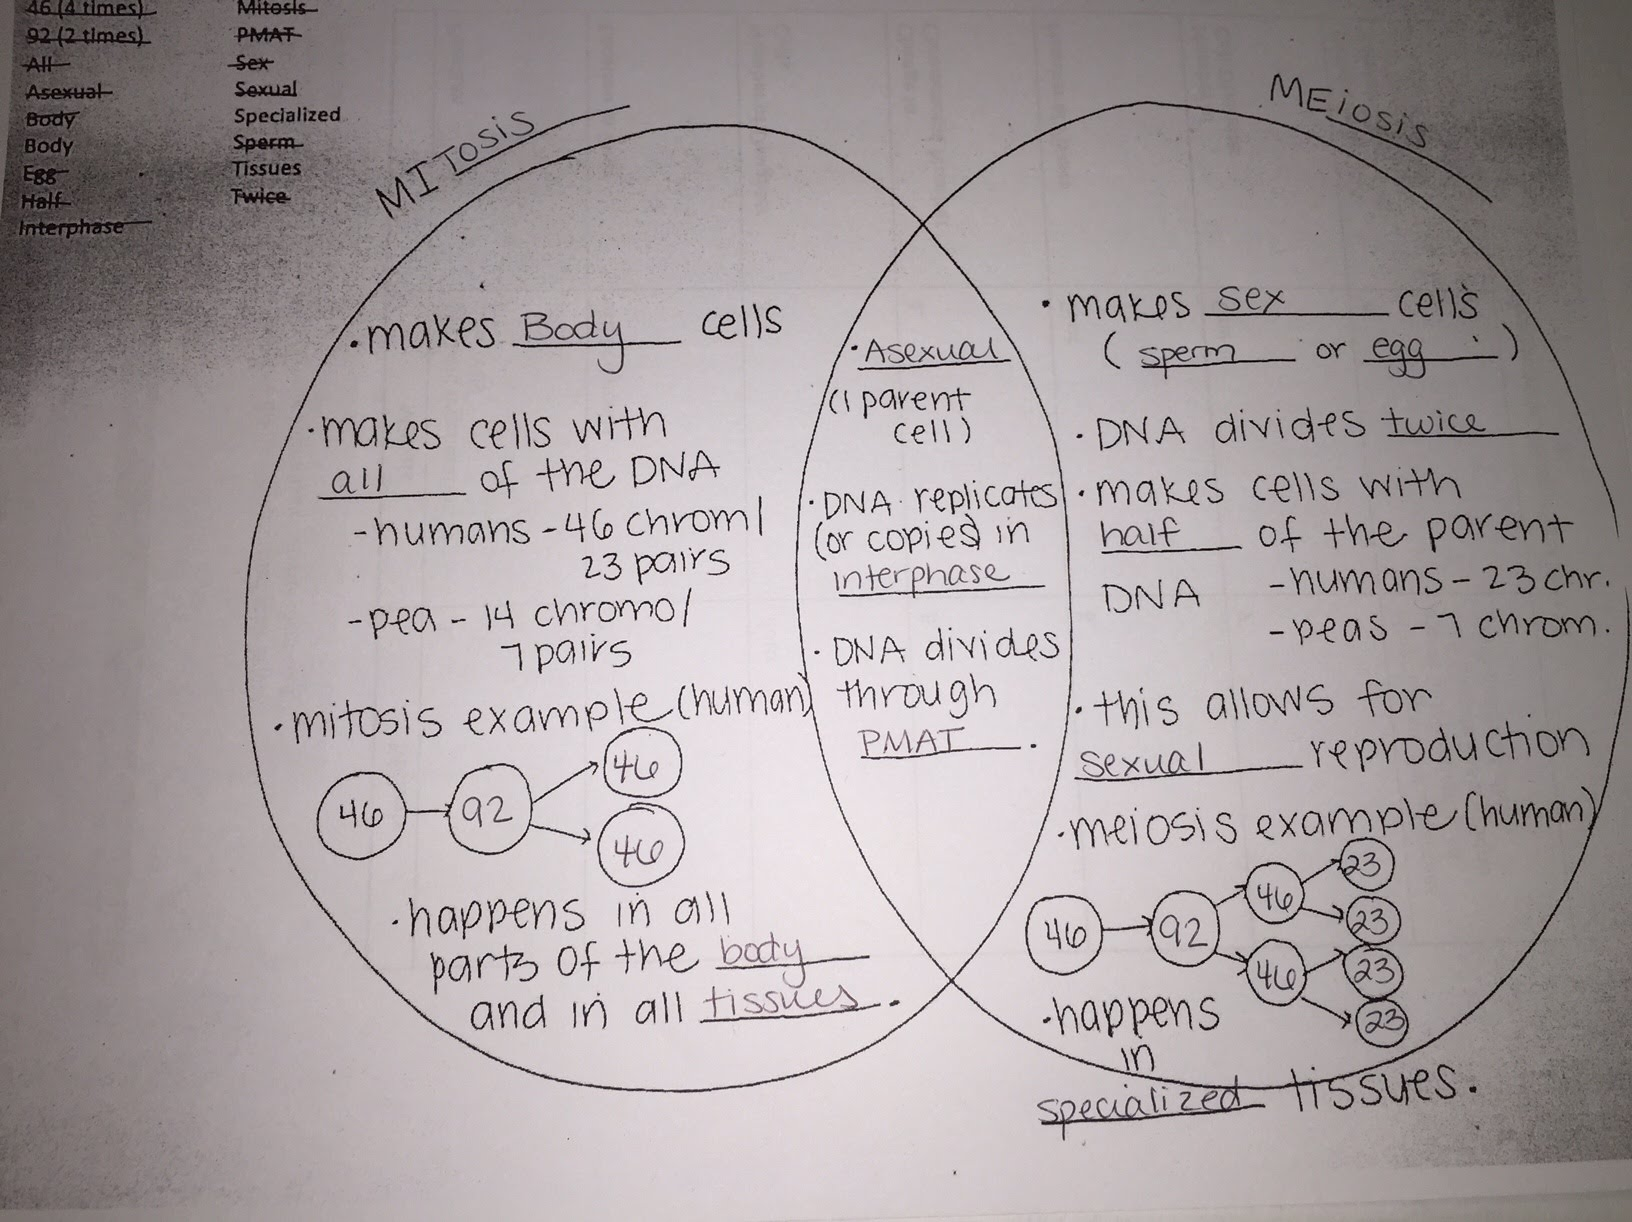 Venn diagram division free download wiring diagram unit 7 dna replication and cell division mrs mcnamaras downloadable venn diagram template this unit pooptronica Choice Image